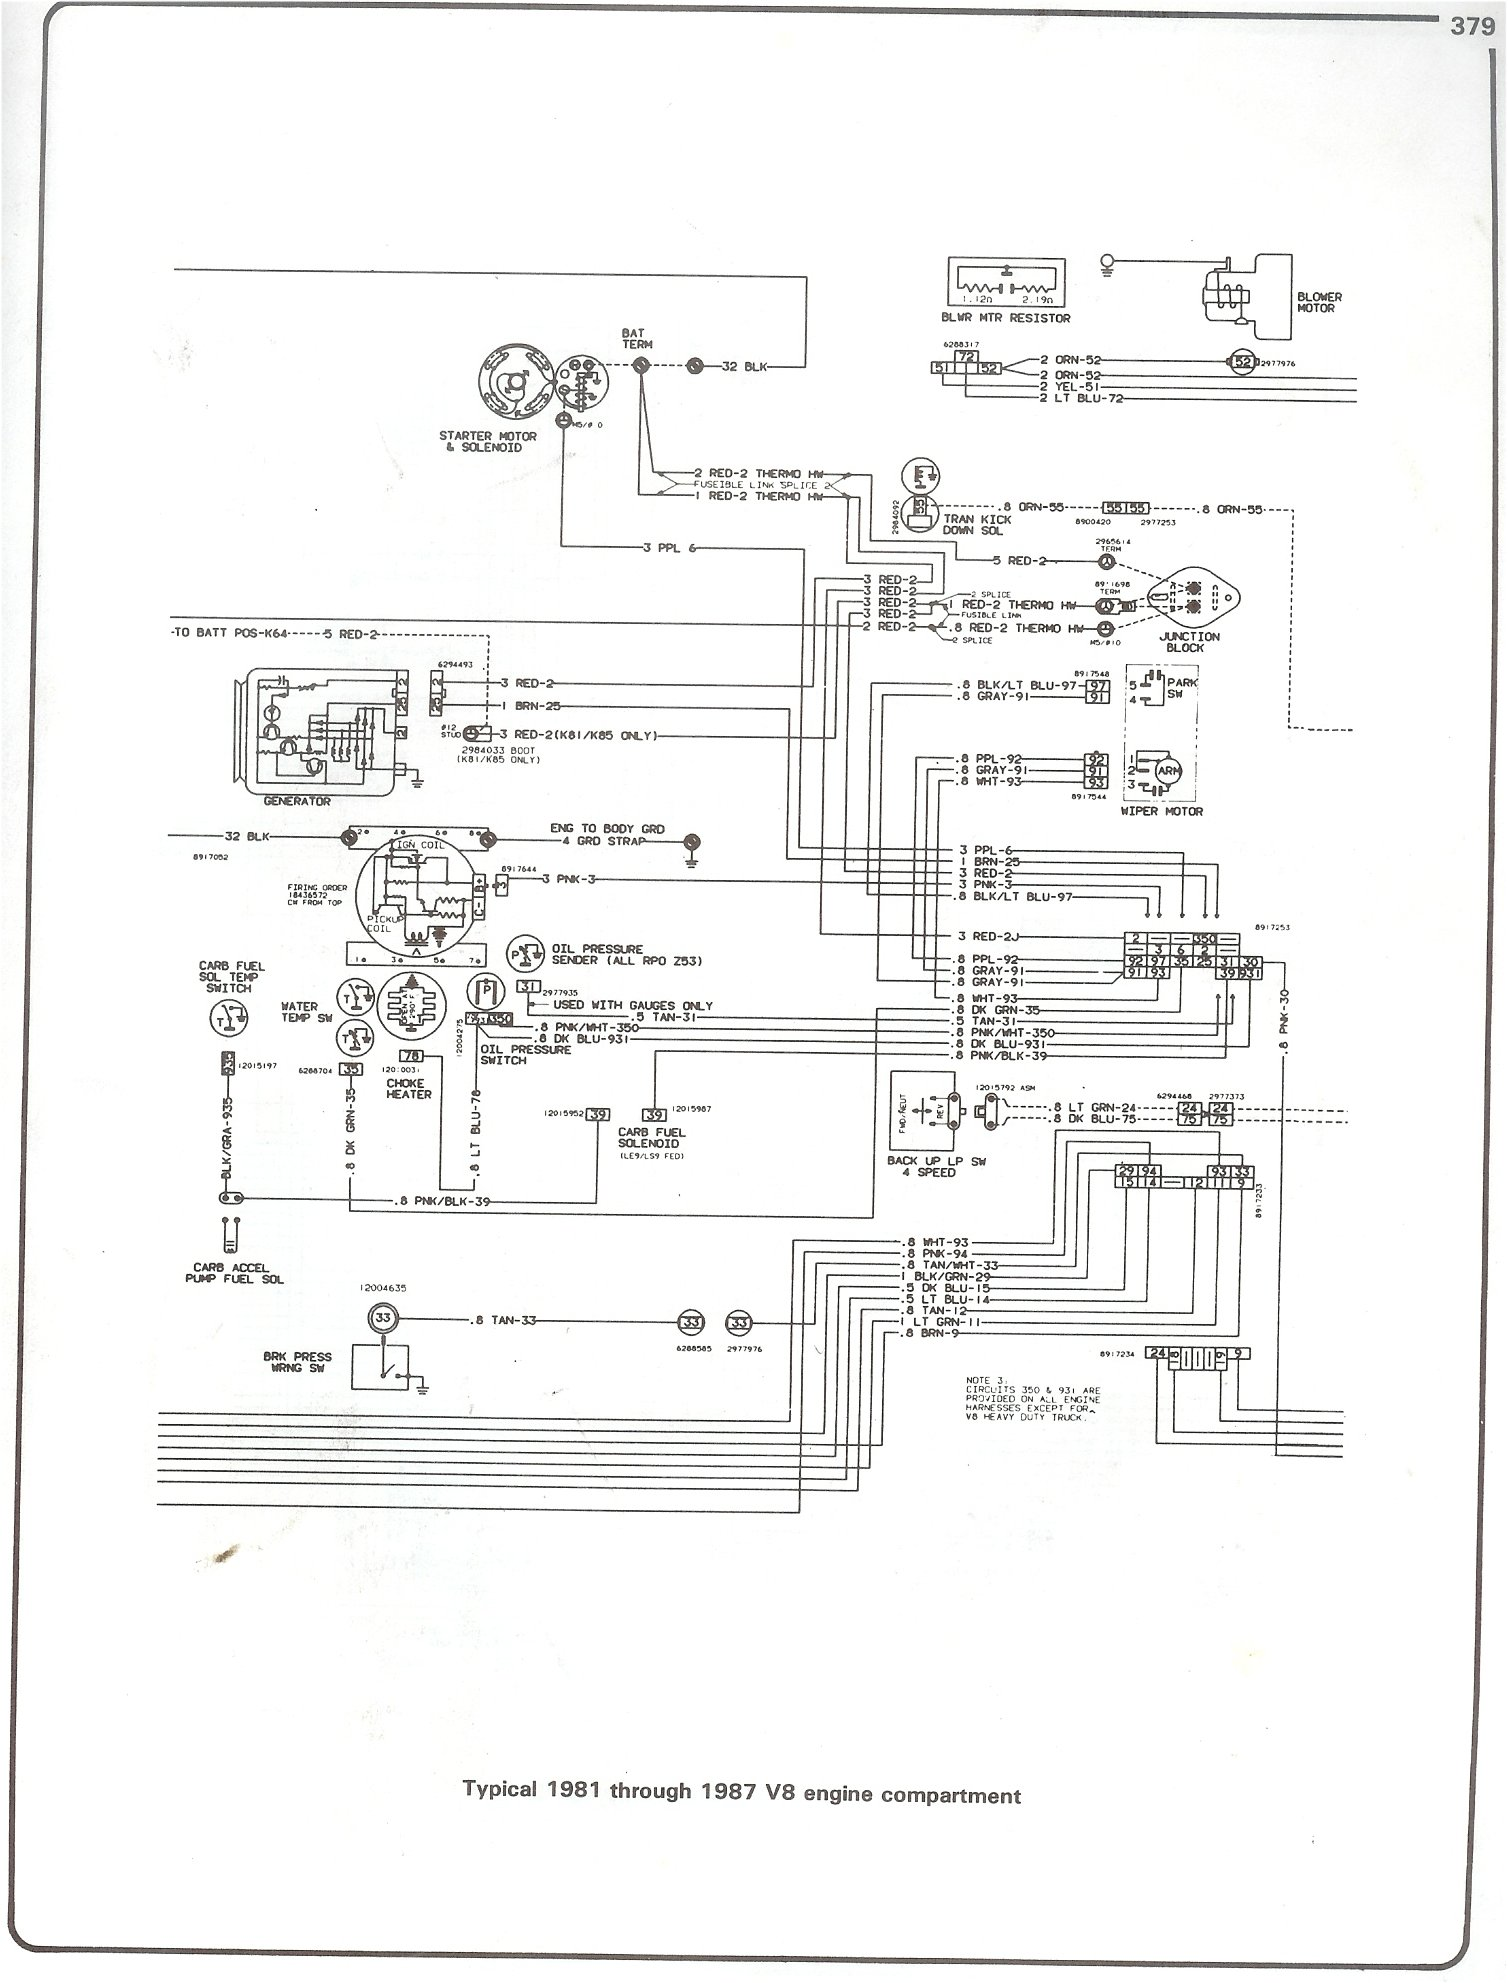 86 Chevy Truck Fuse Box Wiring Library 1979 Ford F100 Pickup Diagram Schemes